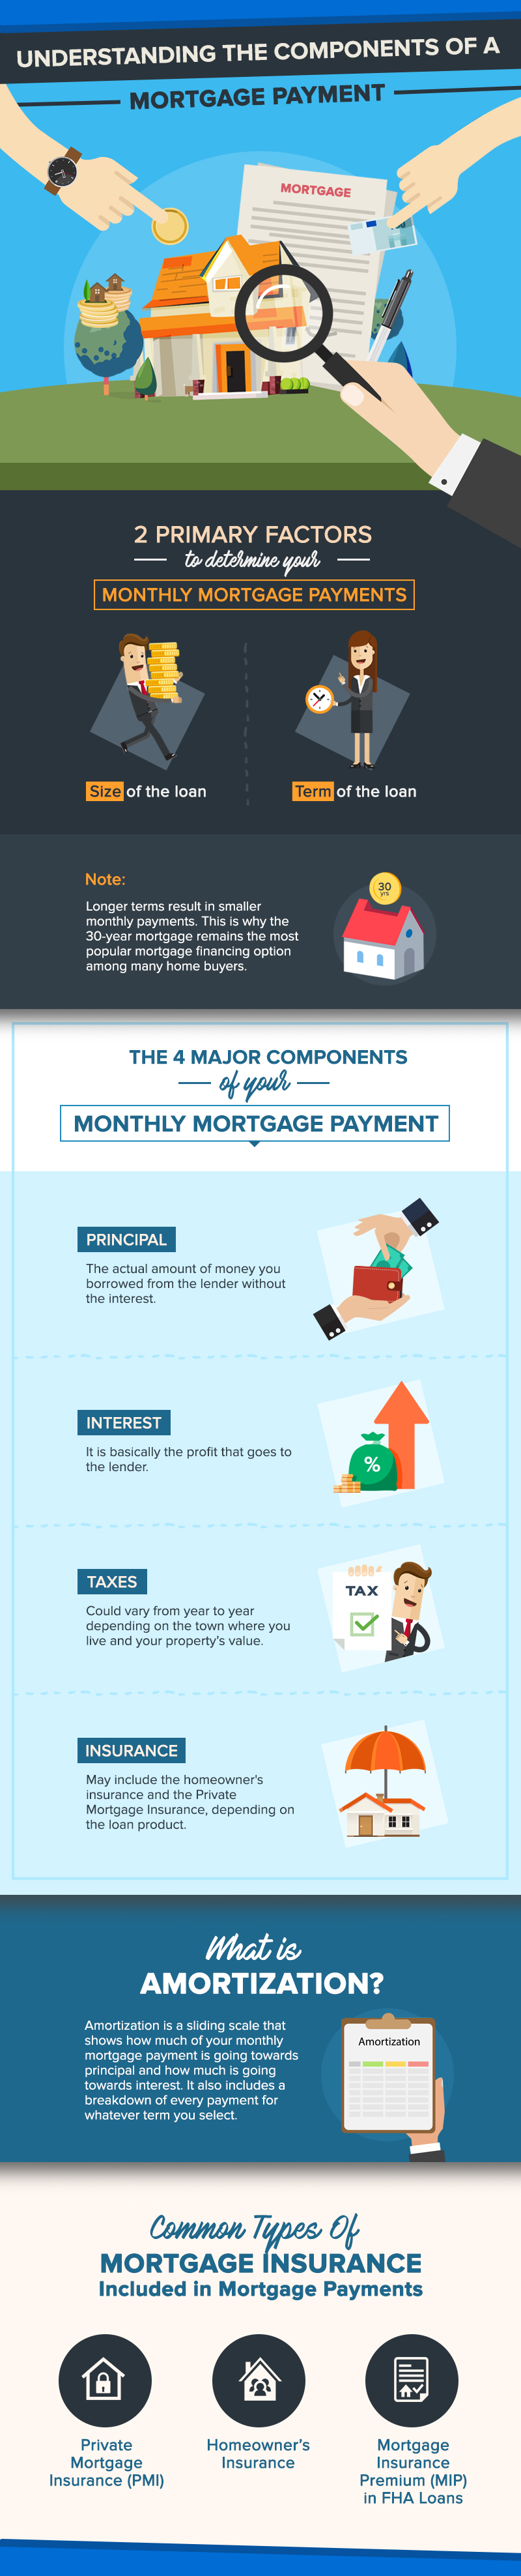 Whats In A Mortgage Breaking Down the Components of A Mortgage Payment.jpg